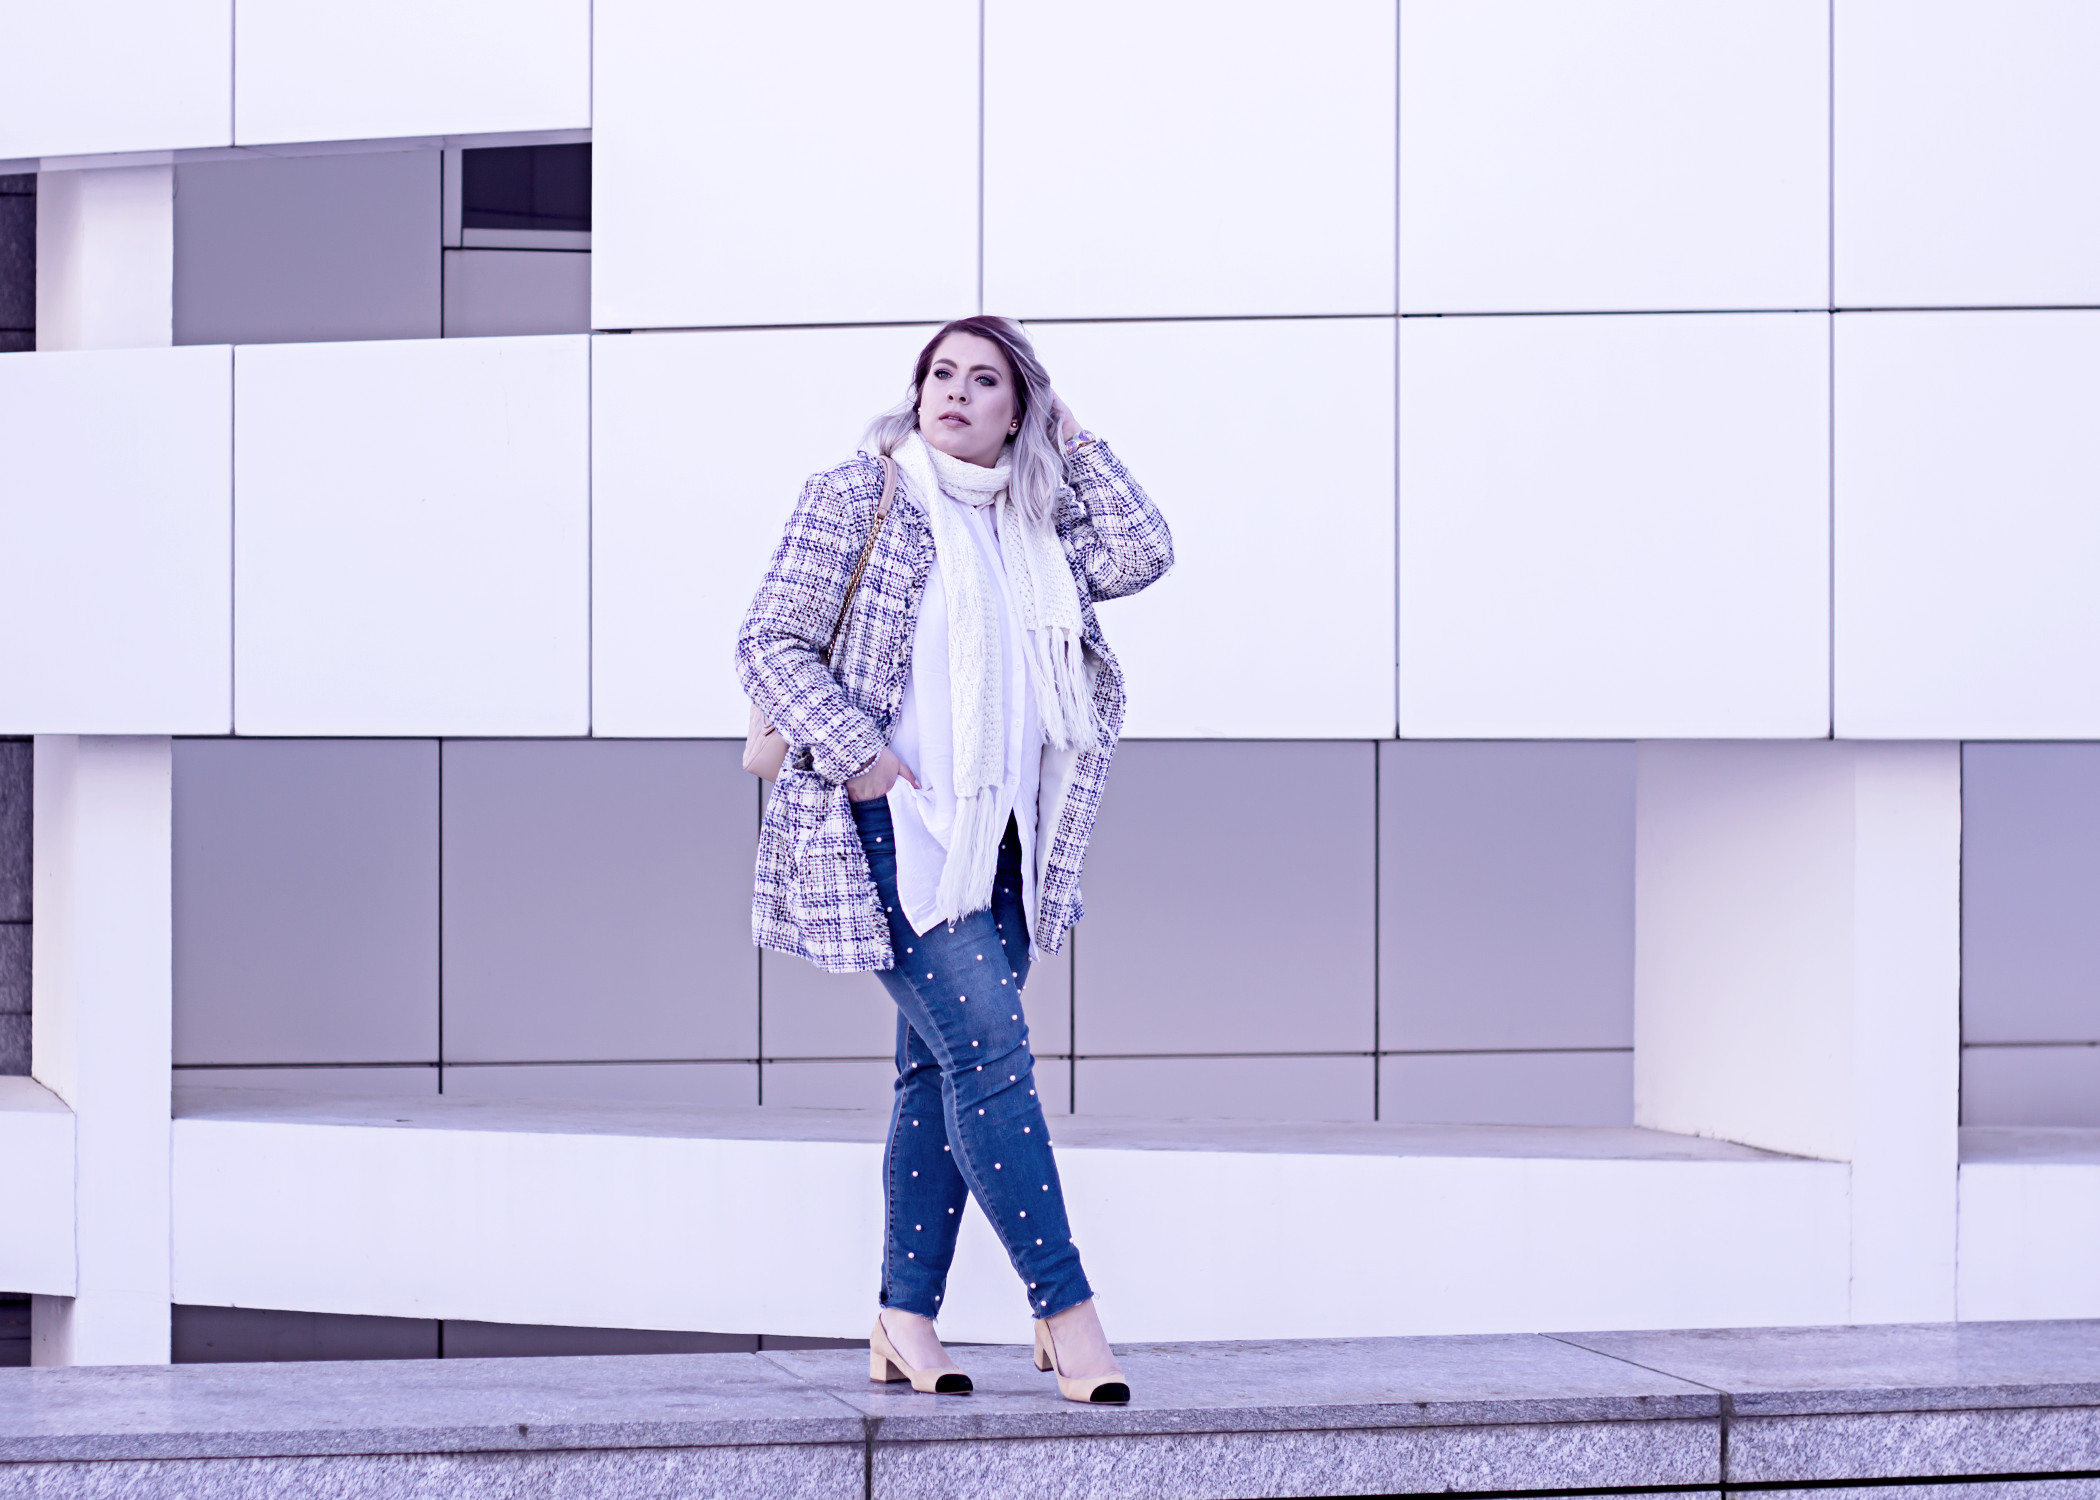 bfb494164df5 How to style a Pearl Jeans in Winter | Feeling like a Snow Princess ...